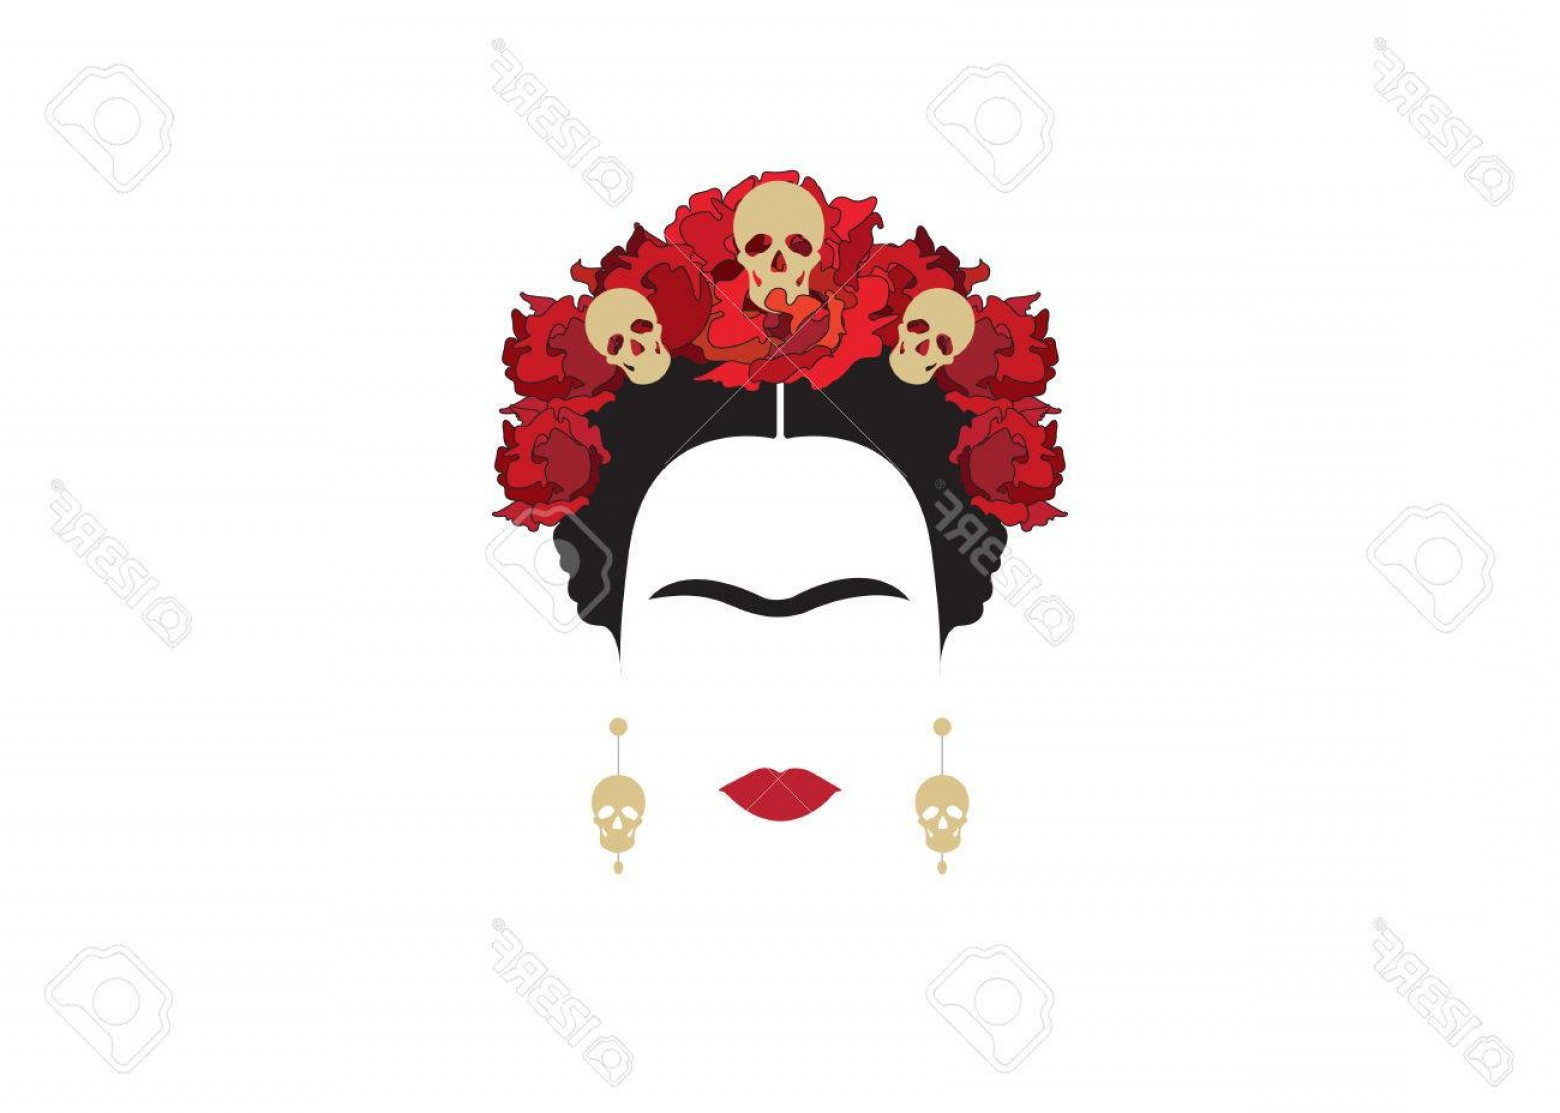 Frida Black And White Vector: Photostock Vector Portrait Of Modern Mexican Woman With Skulls And Red Flower Inspiration Santa Muerte In Mexico And F